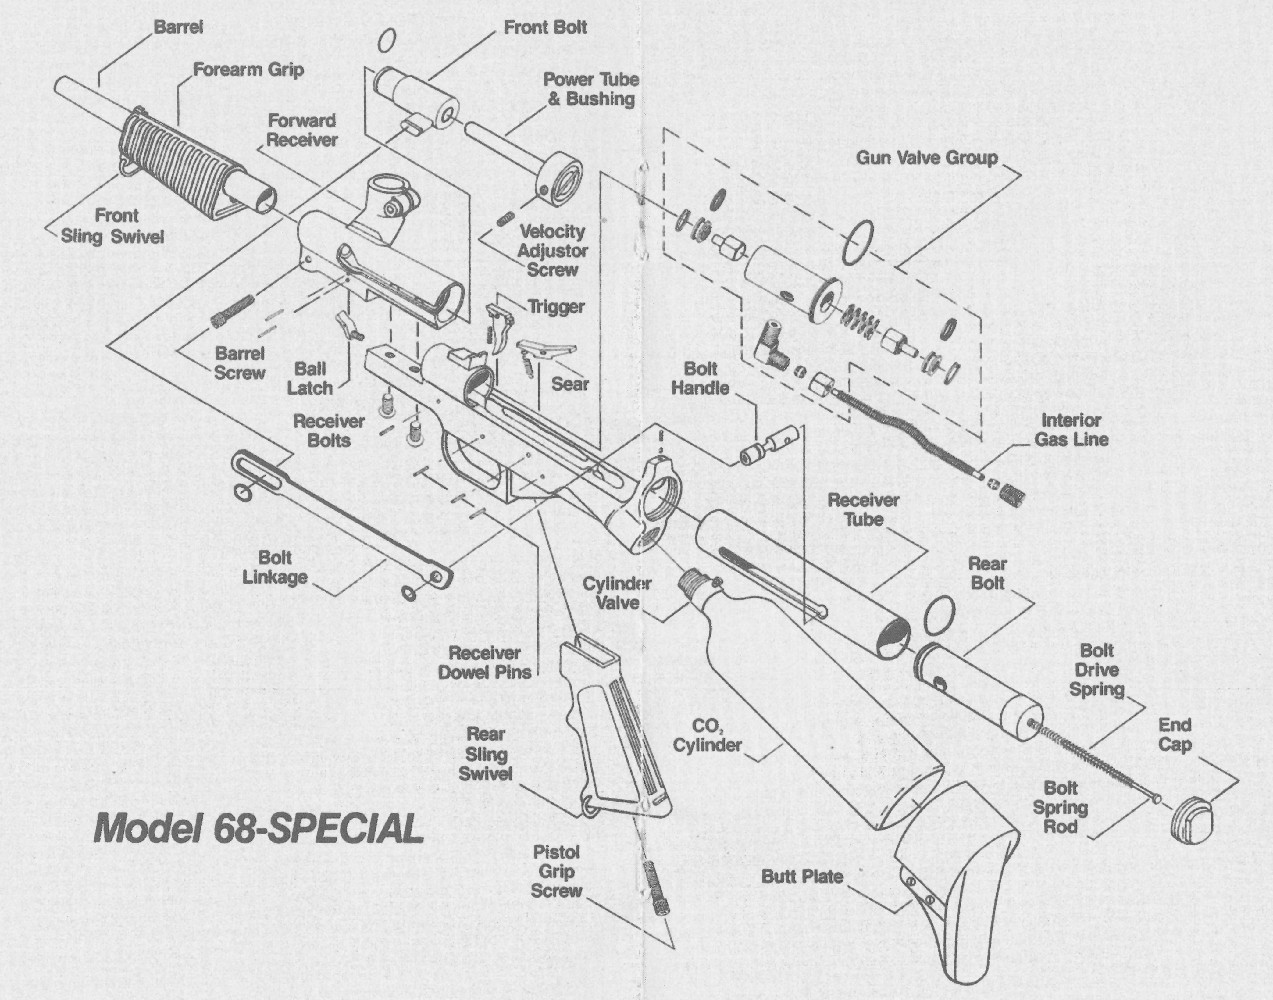 Tippmann Parts Diagram Trusted Wiring Diagrams Model 98 Schematic The 68 Special From Pneumatics Inc April 2013 Mods